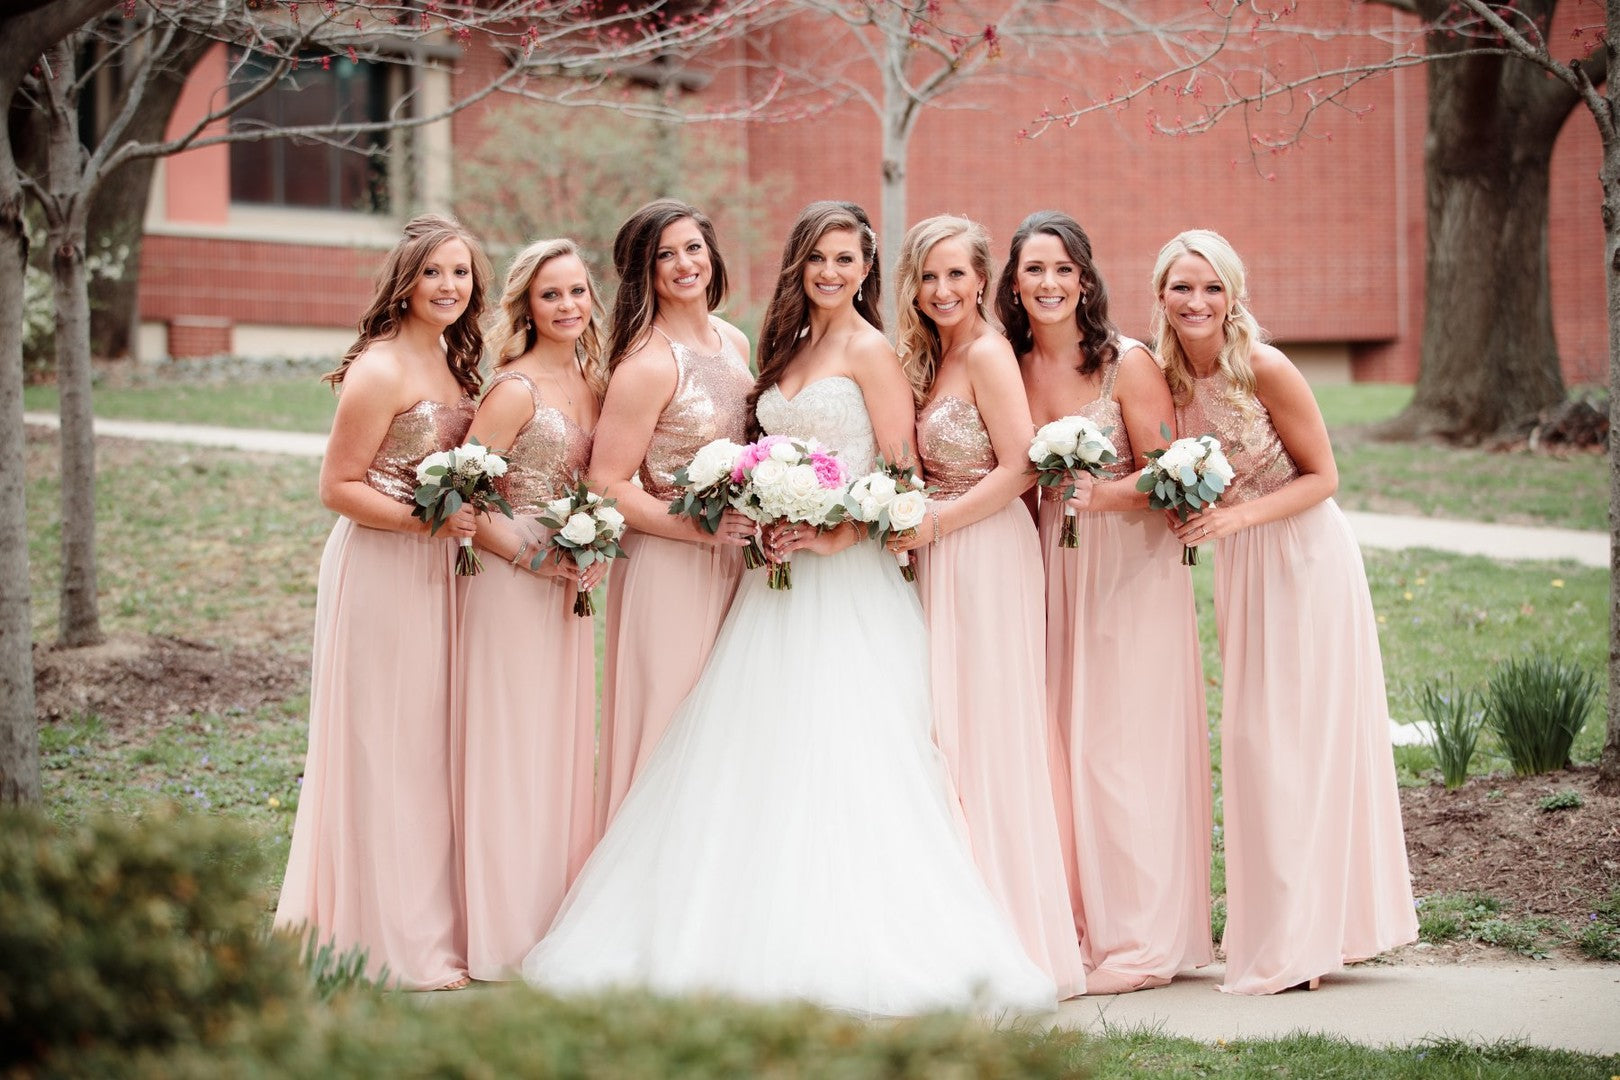 Bride With Bridesmaids | A Gorgeous Grand Wedding in Ohio | Kate Aspen